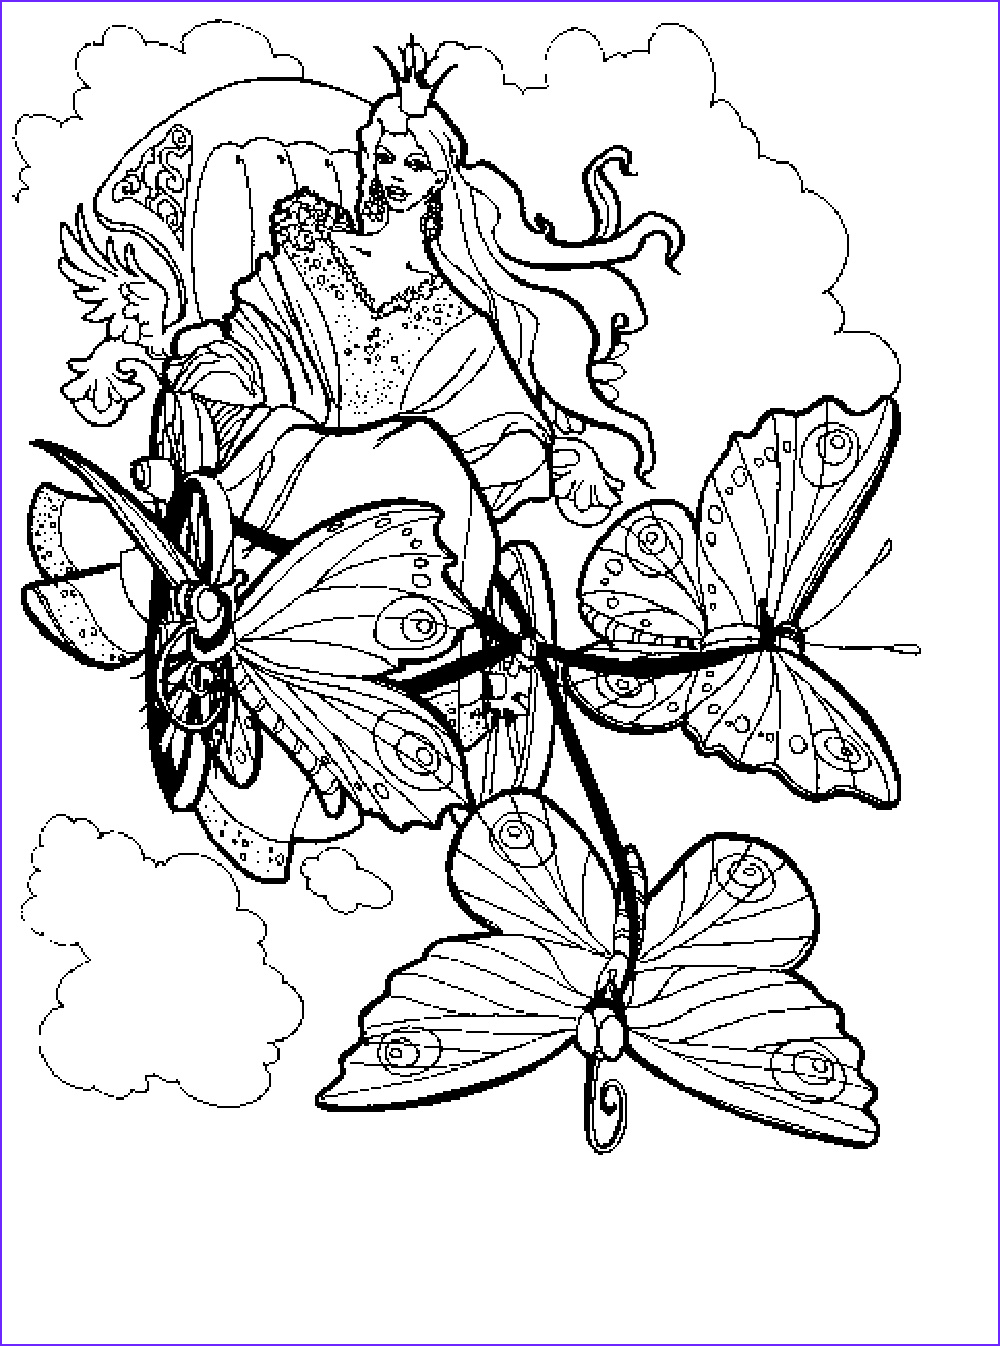 Free Printable Advanced Coloring Pages Cool Images Free Printable Advanced Coloring Pages Coloring Home